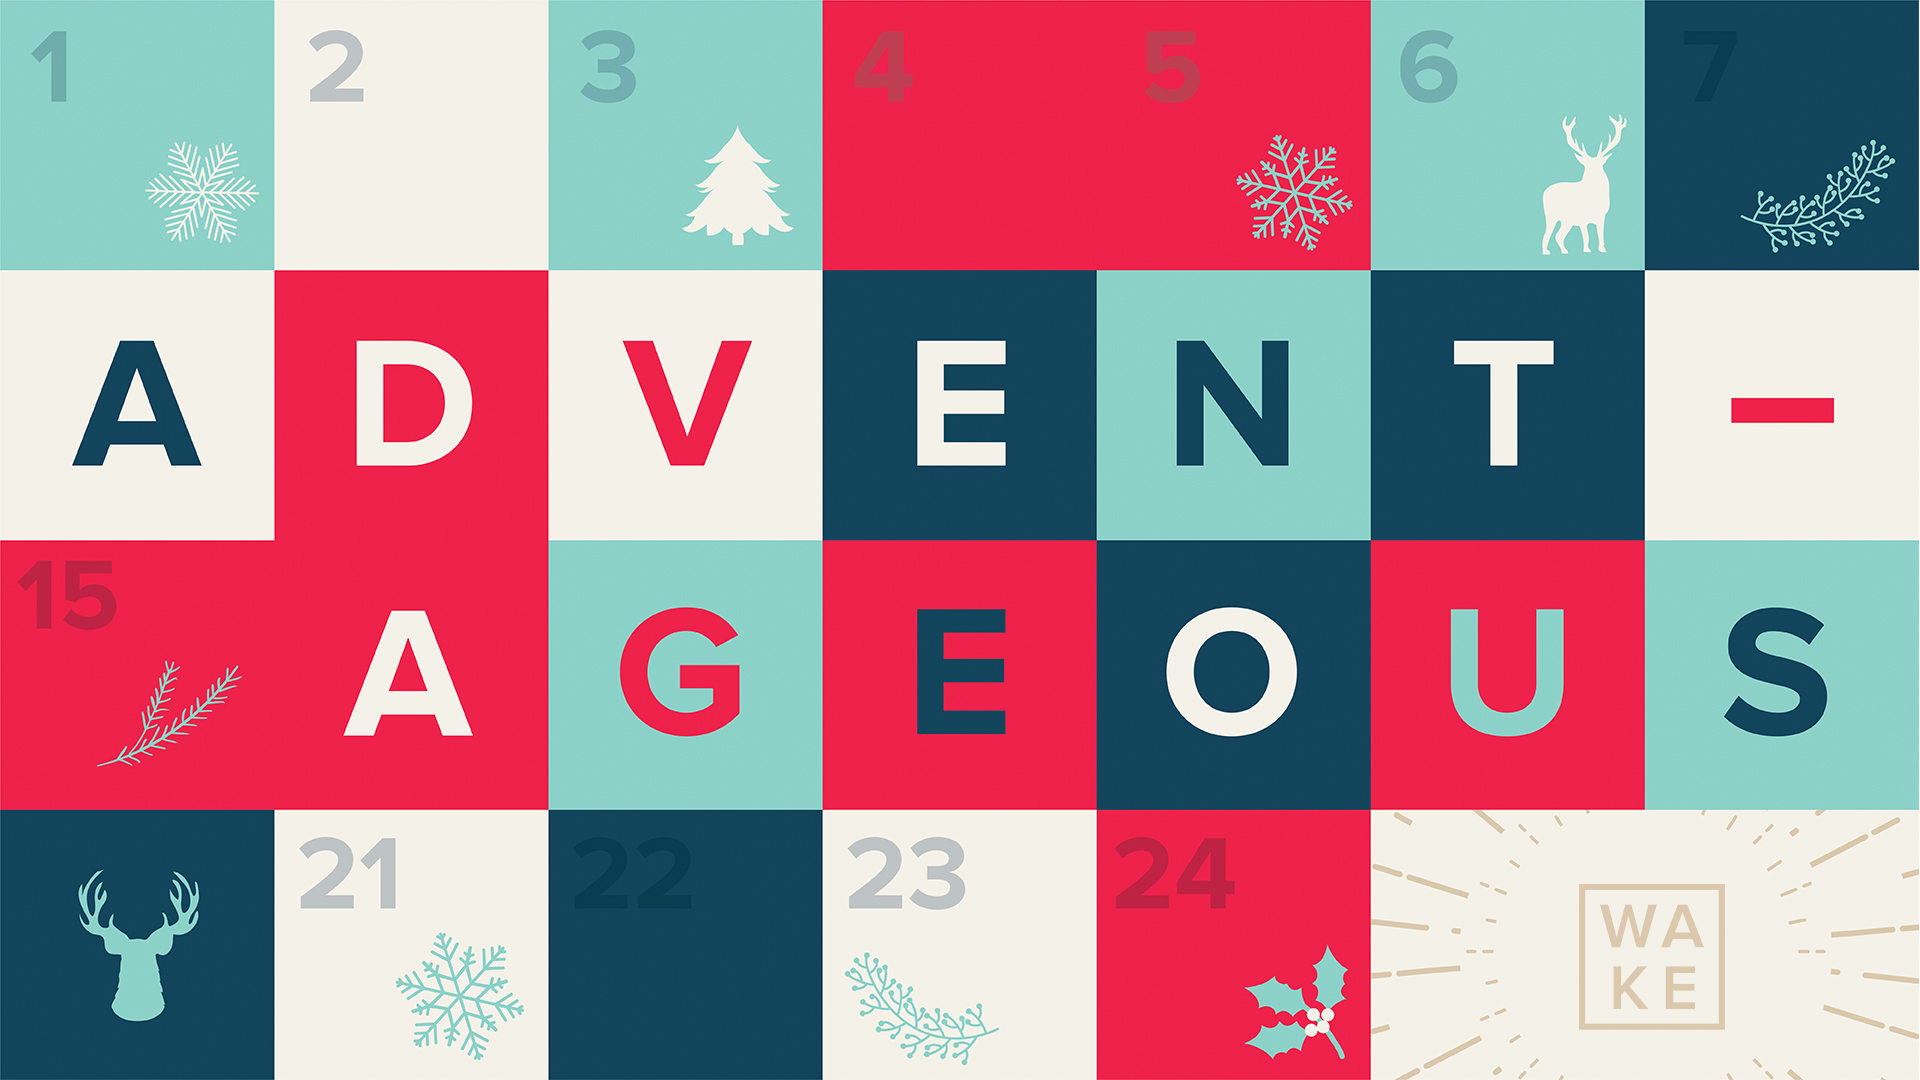 ADVENT-AGEOUS - We would love for you join us this Sunday as we continue our series Advent-ageous!